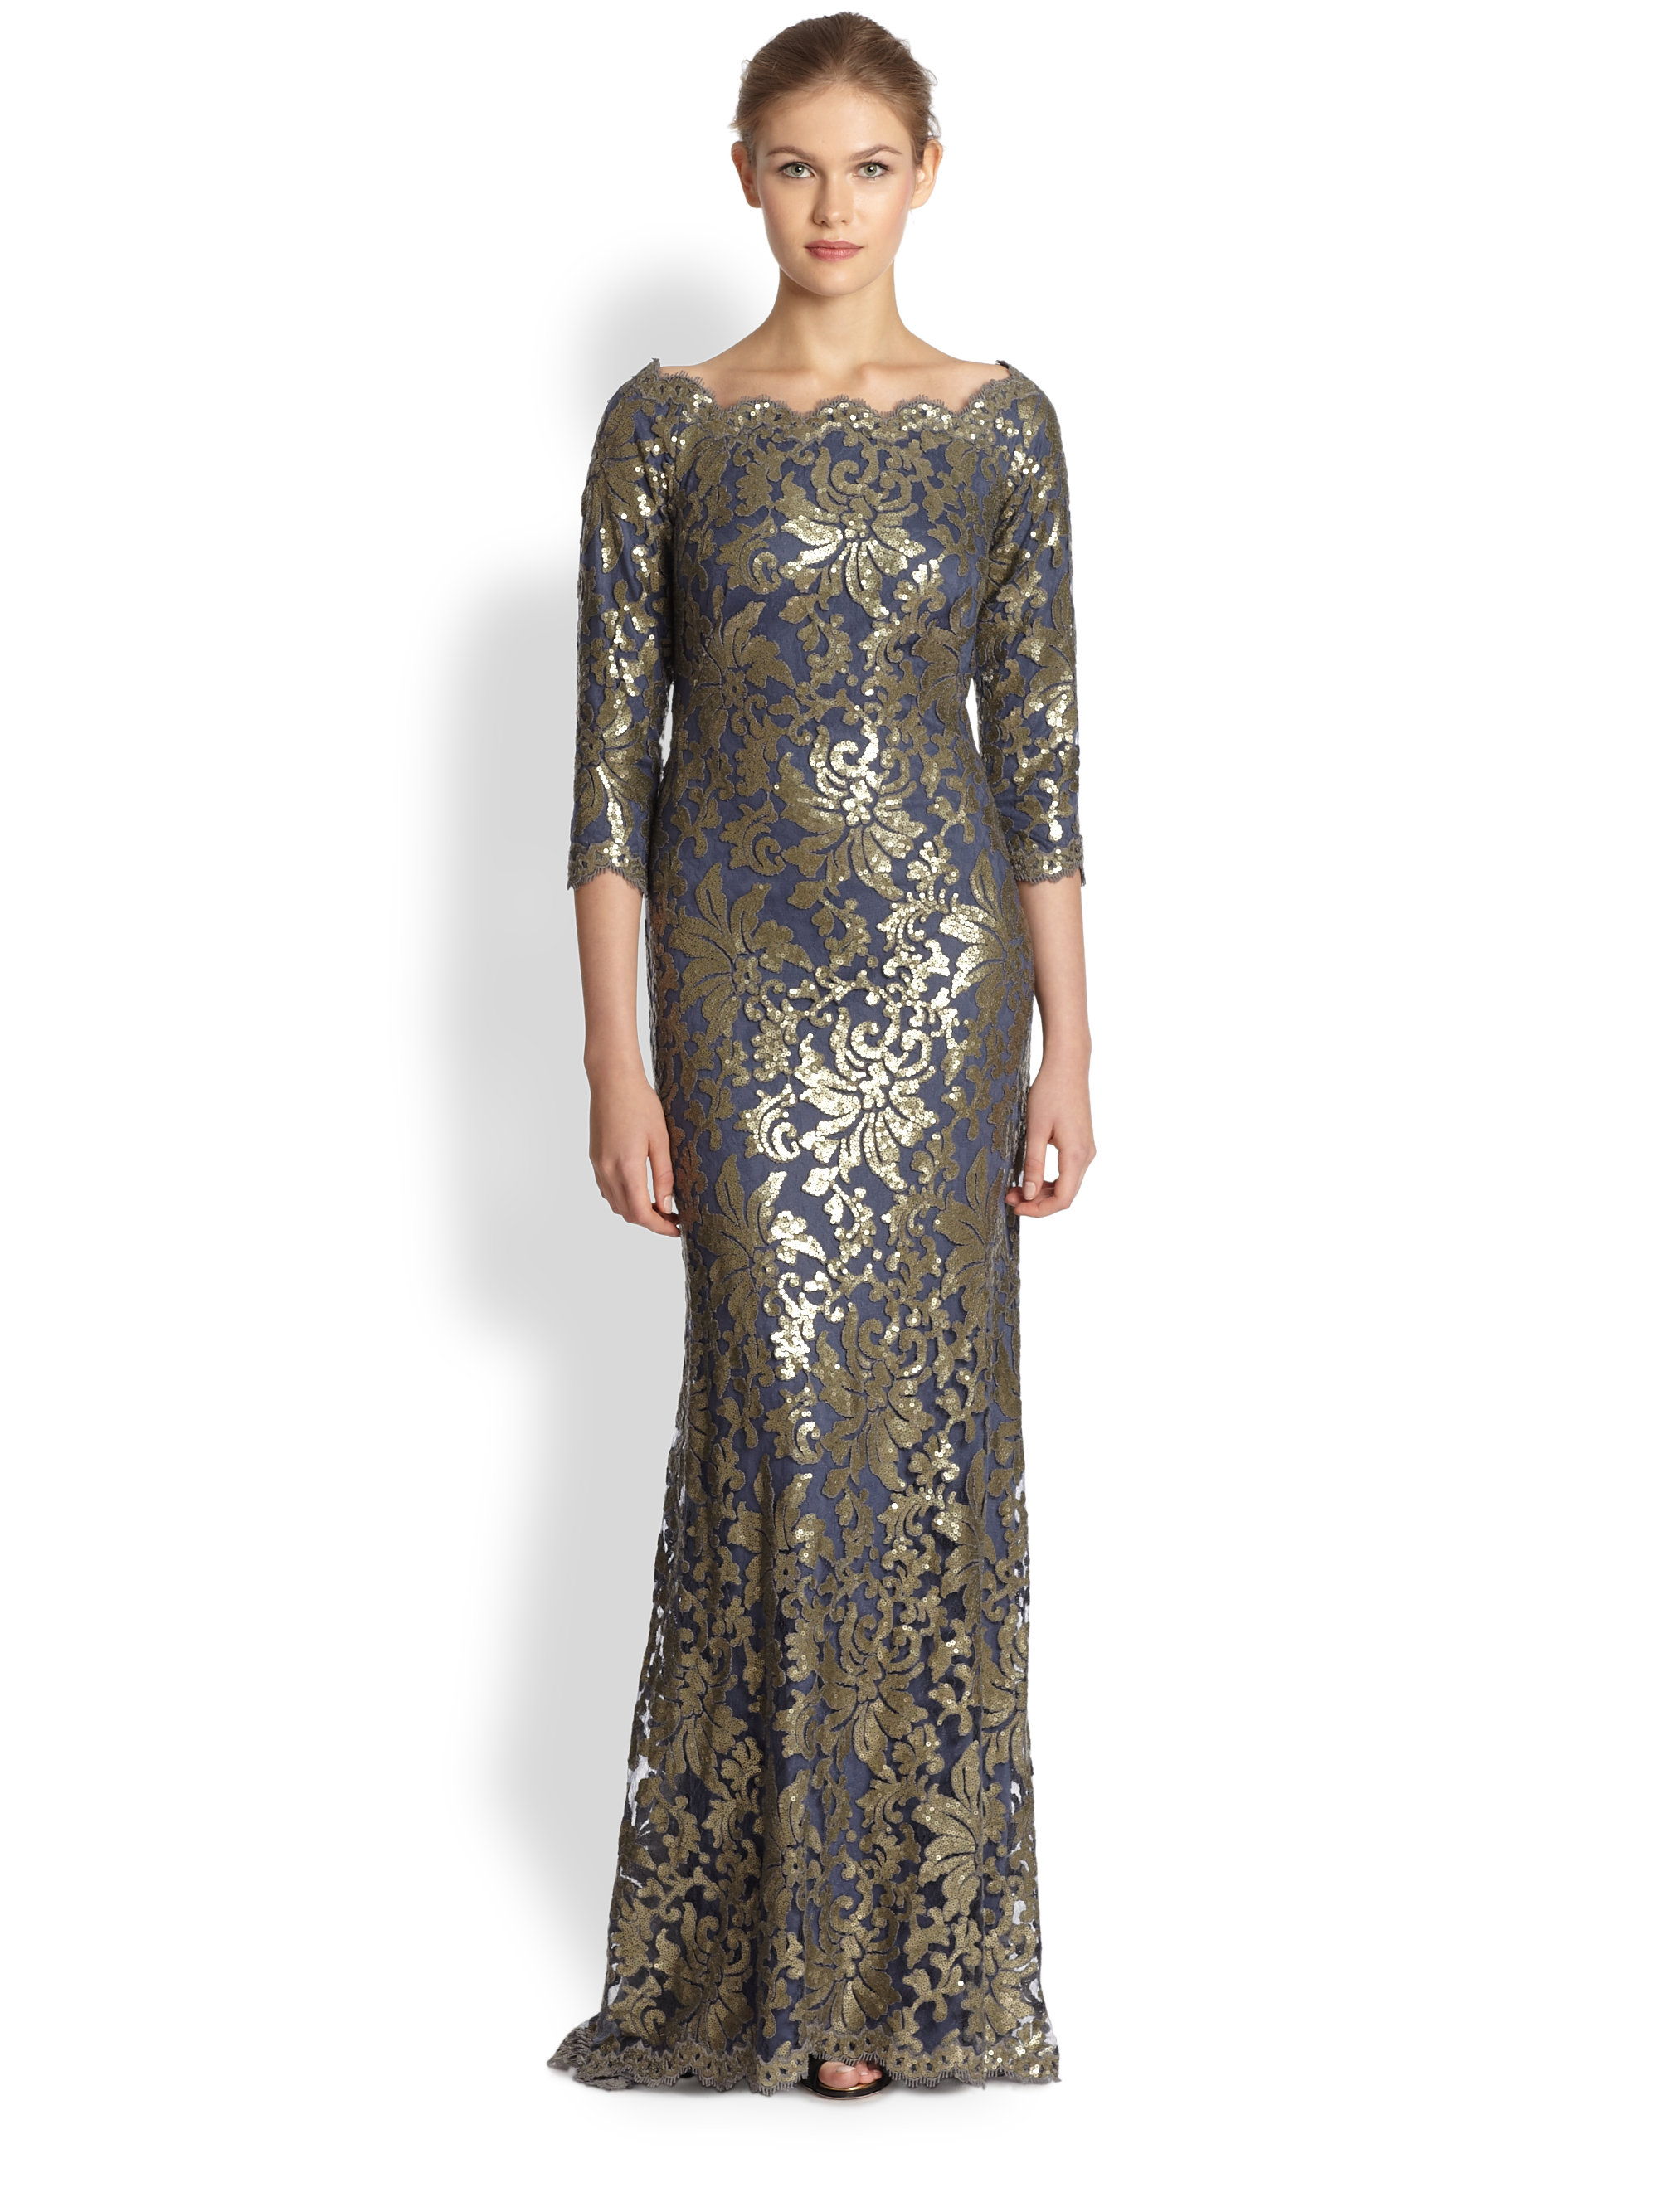 Tadashi Shoji Sequined Lace Gown in Blue - Lyst